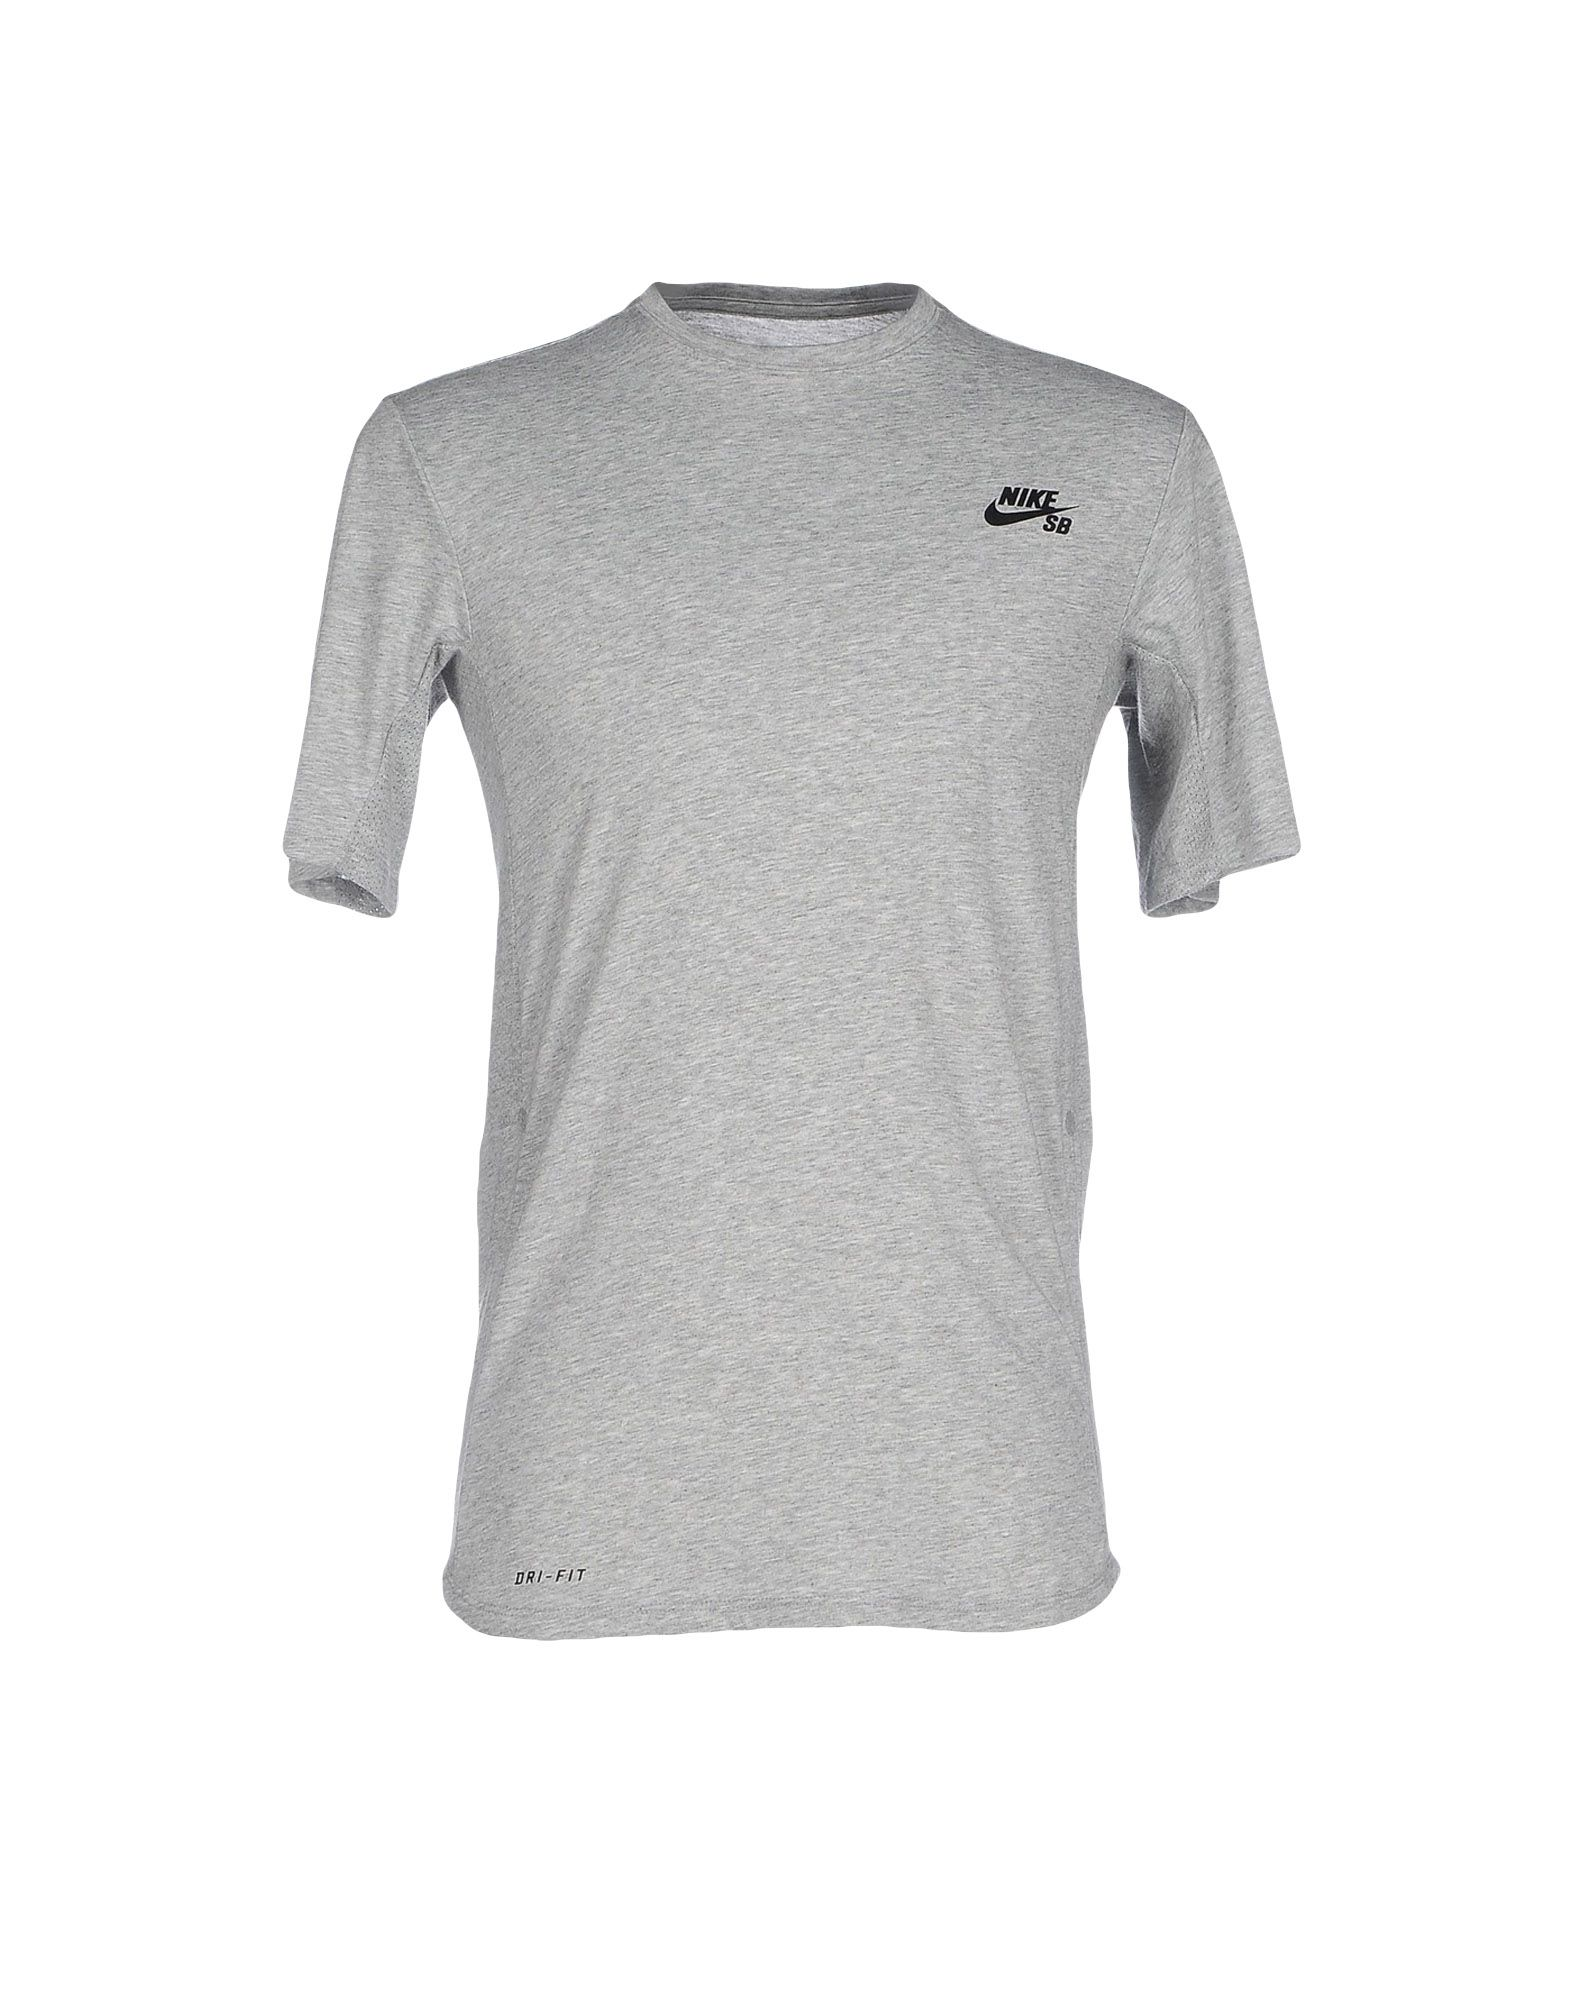 new product e8da4 3c696 Nike T-Shirt - Men Nike T-Shirts online on YOOX United State